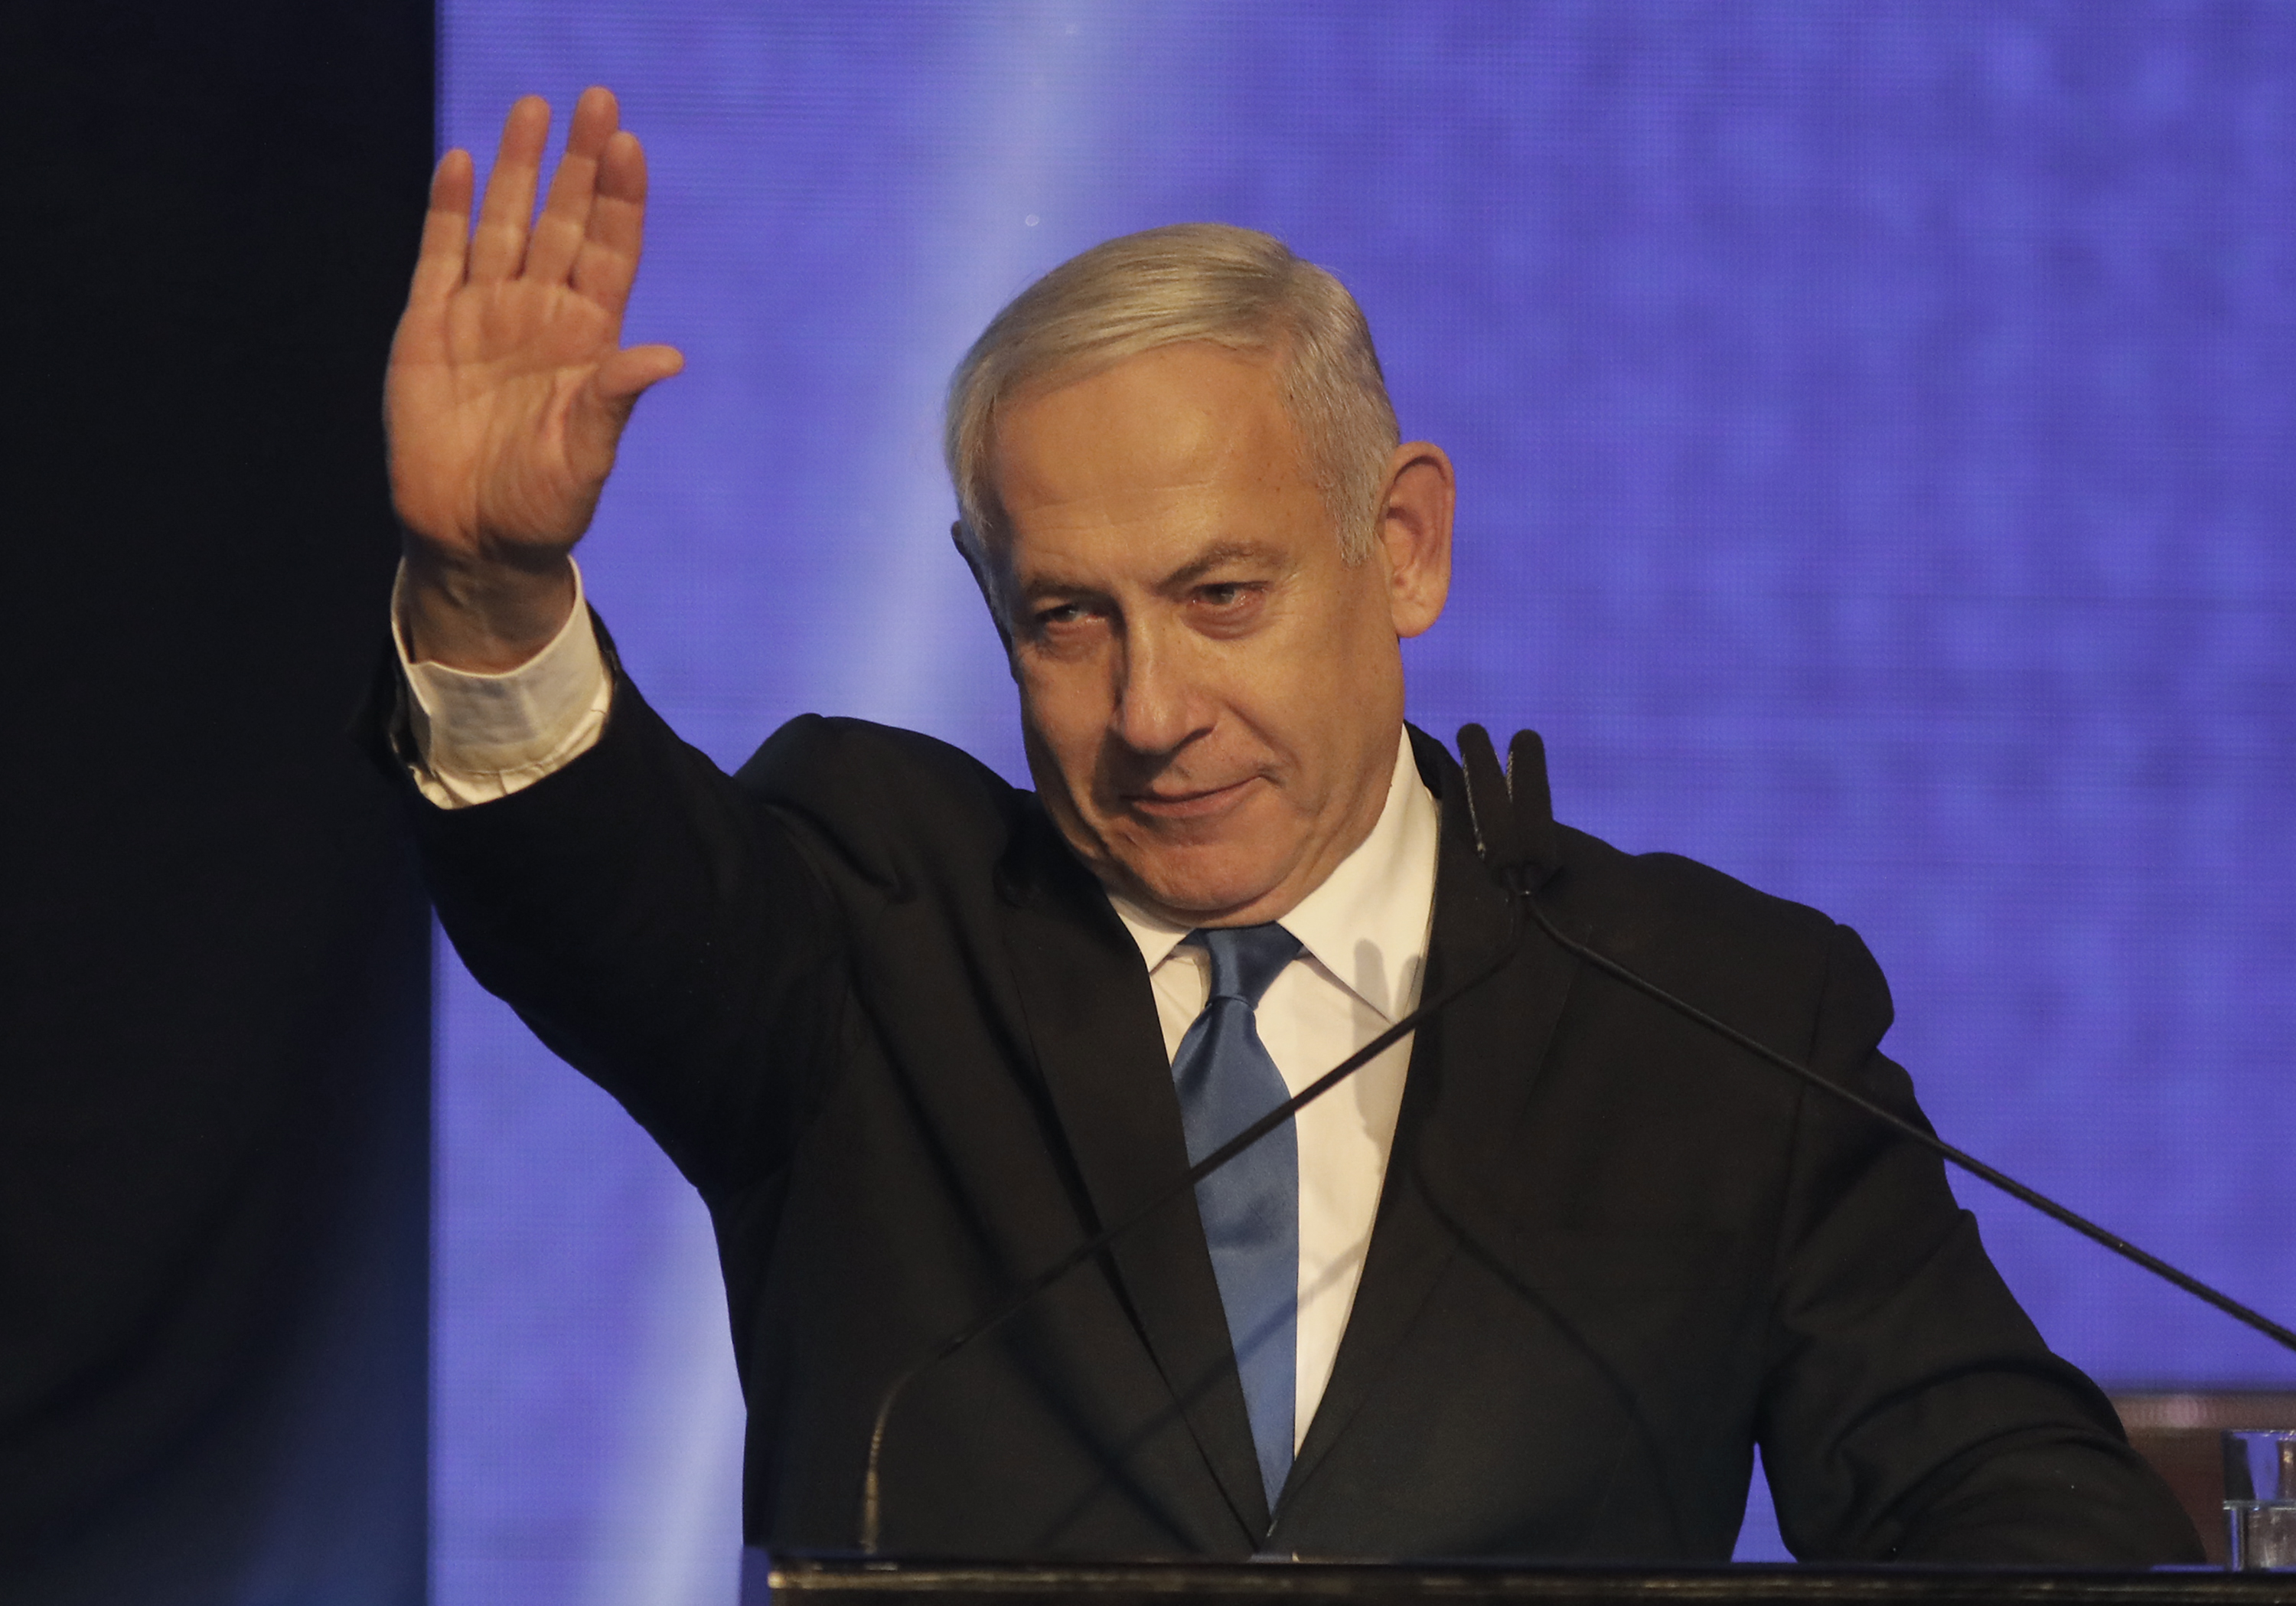 Netanyahu speaking on election night.